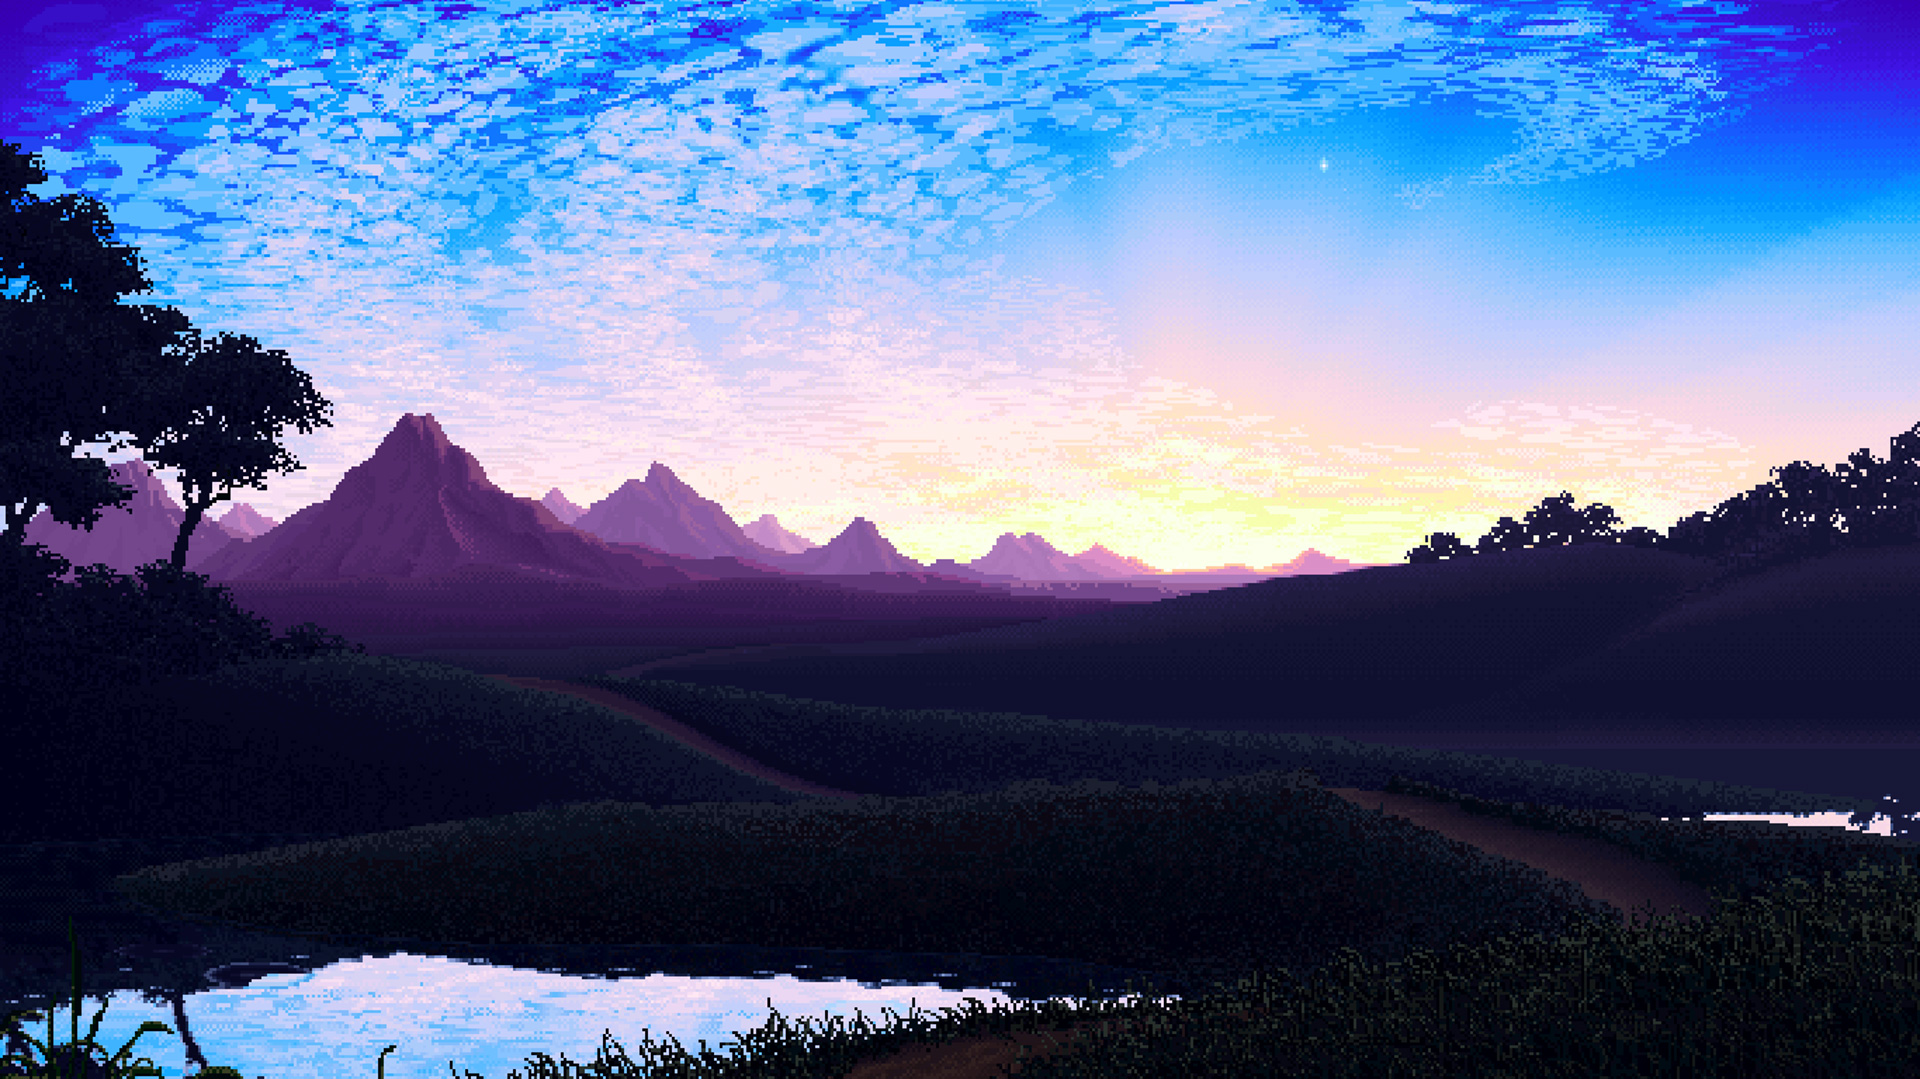 Pixel Landscape Hd Artist 4k Wallpapers Images Backgrounds Photos And Pictures